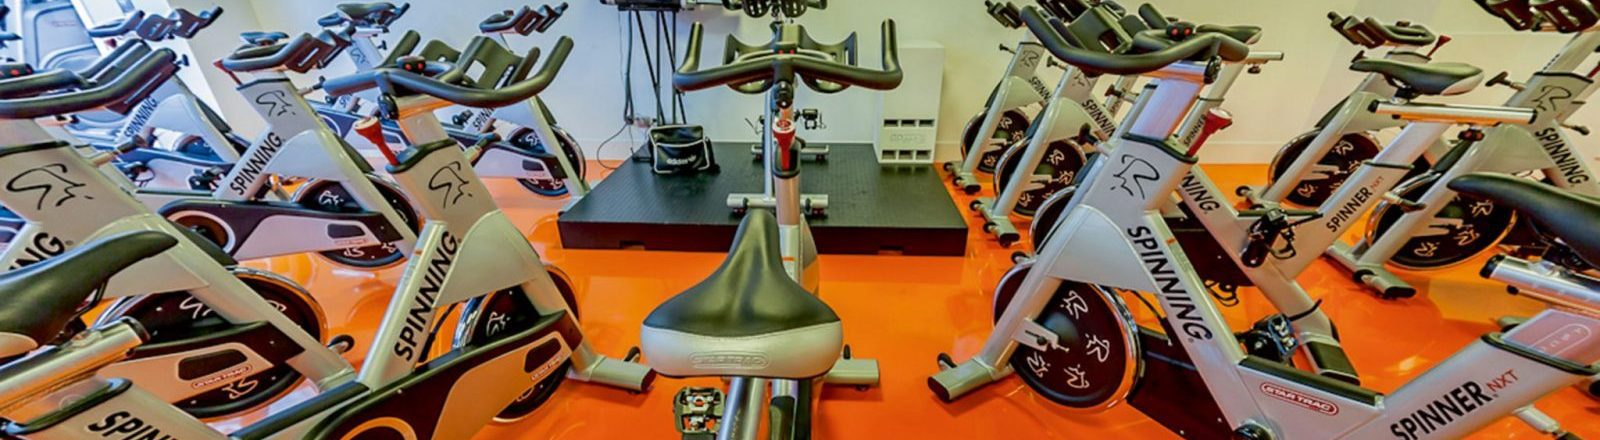 Spinning class with orange flooring in Birmingham